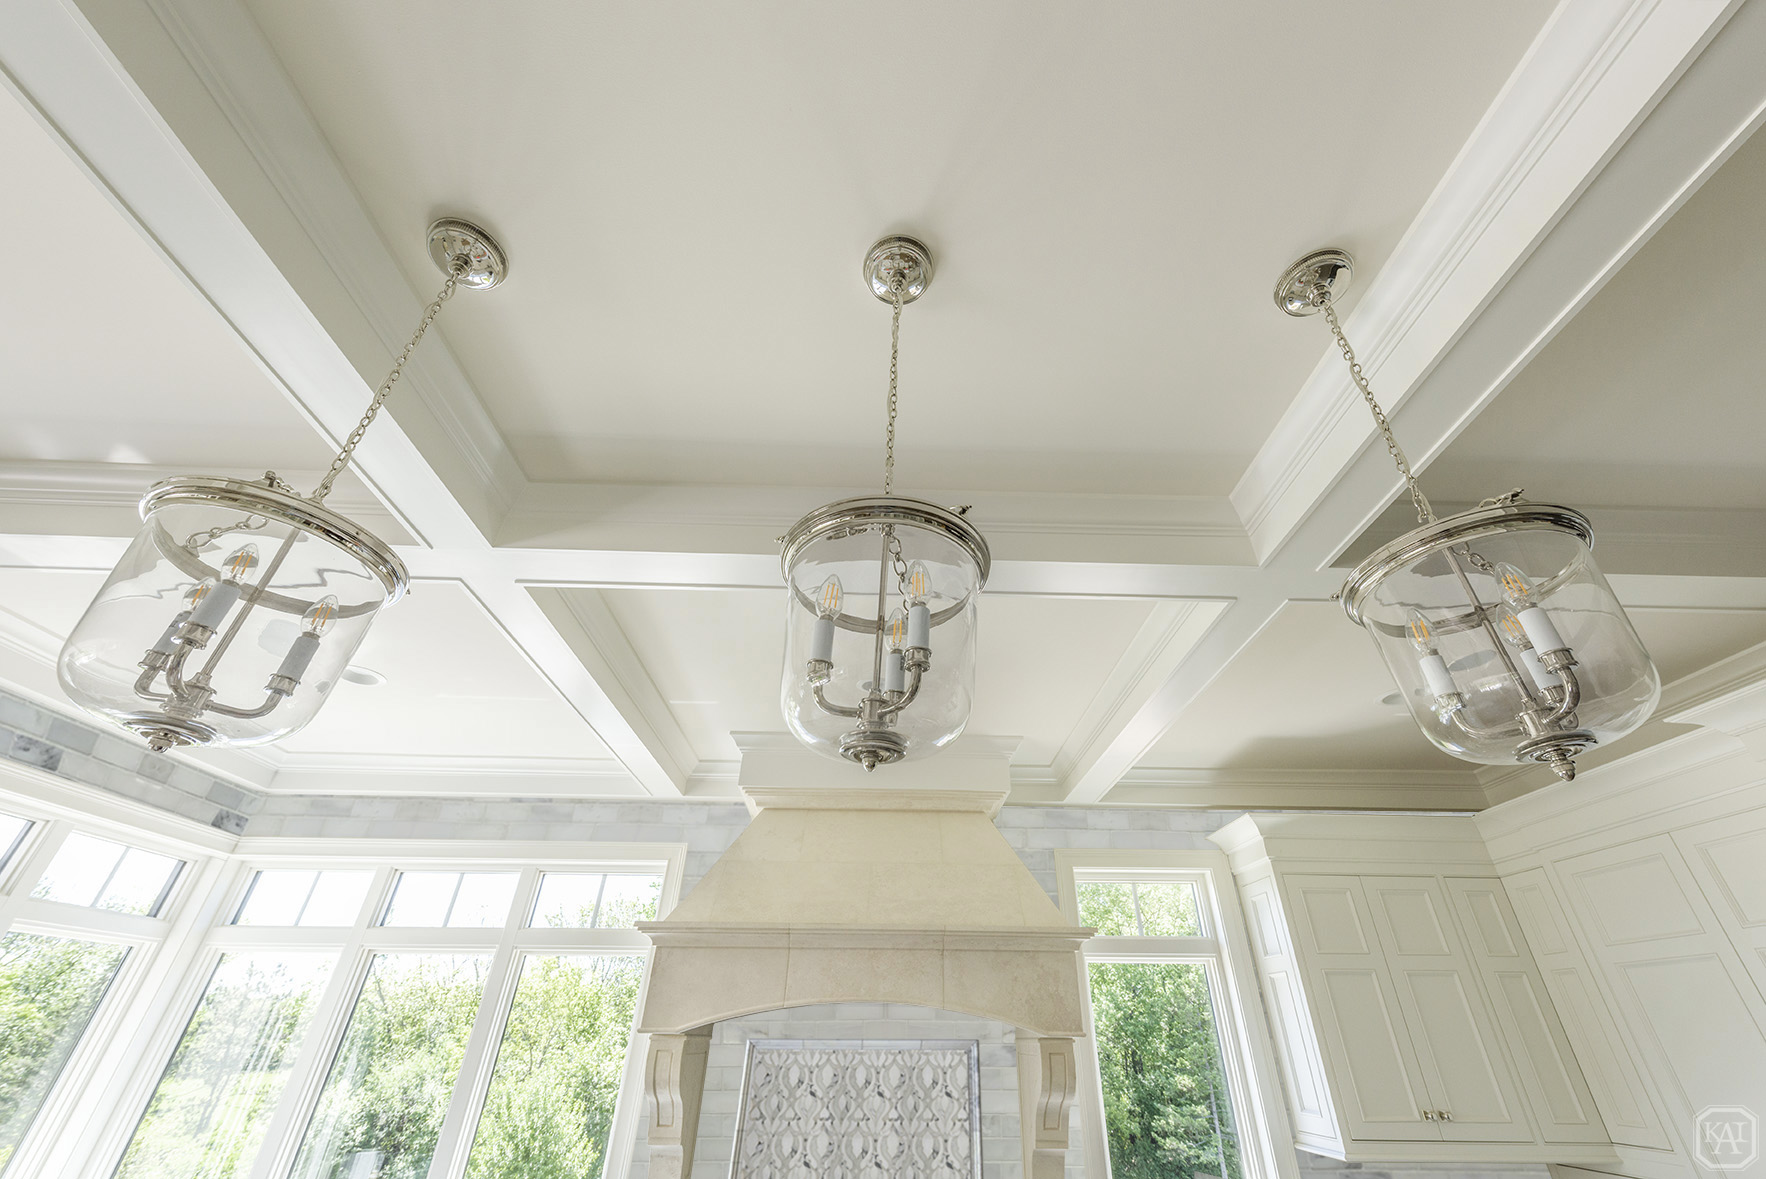 ZITELLA KITCHEN PENDANT LIGHTS.jpg